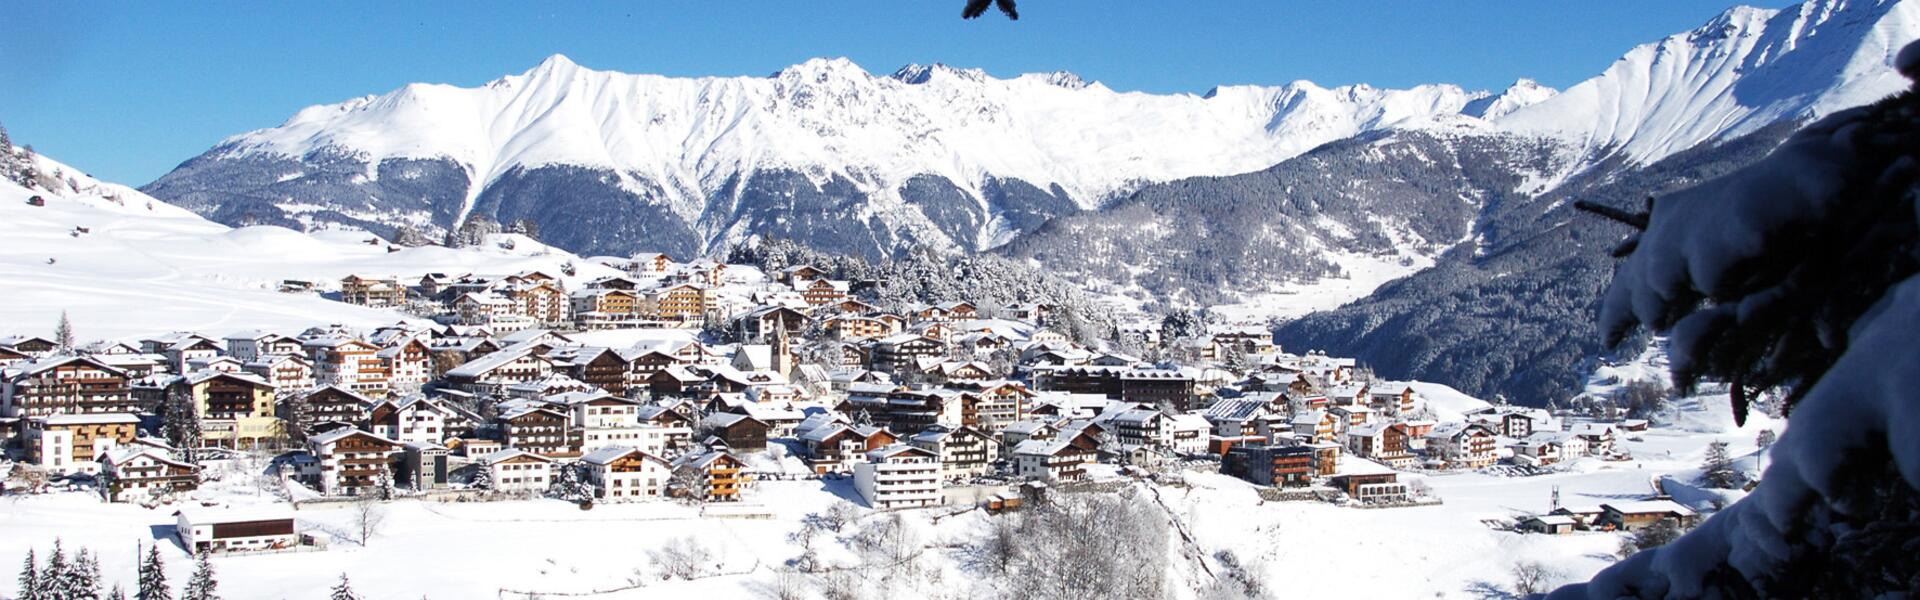 serfaus in winter snow